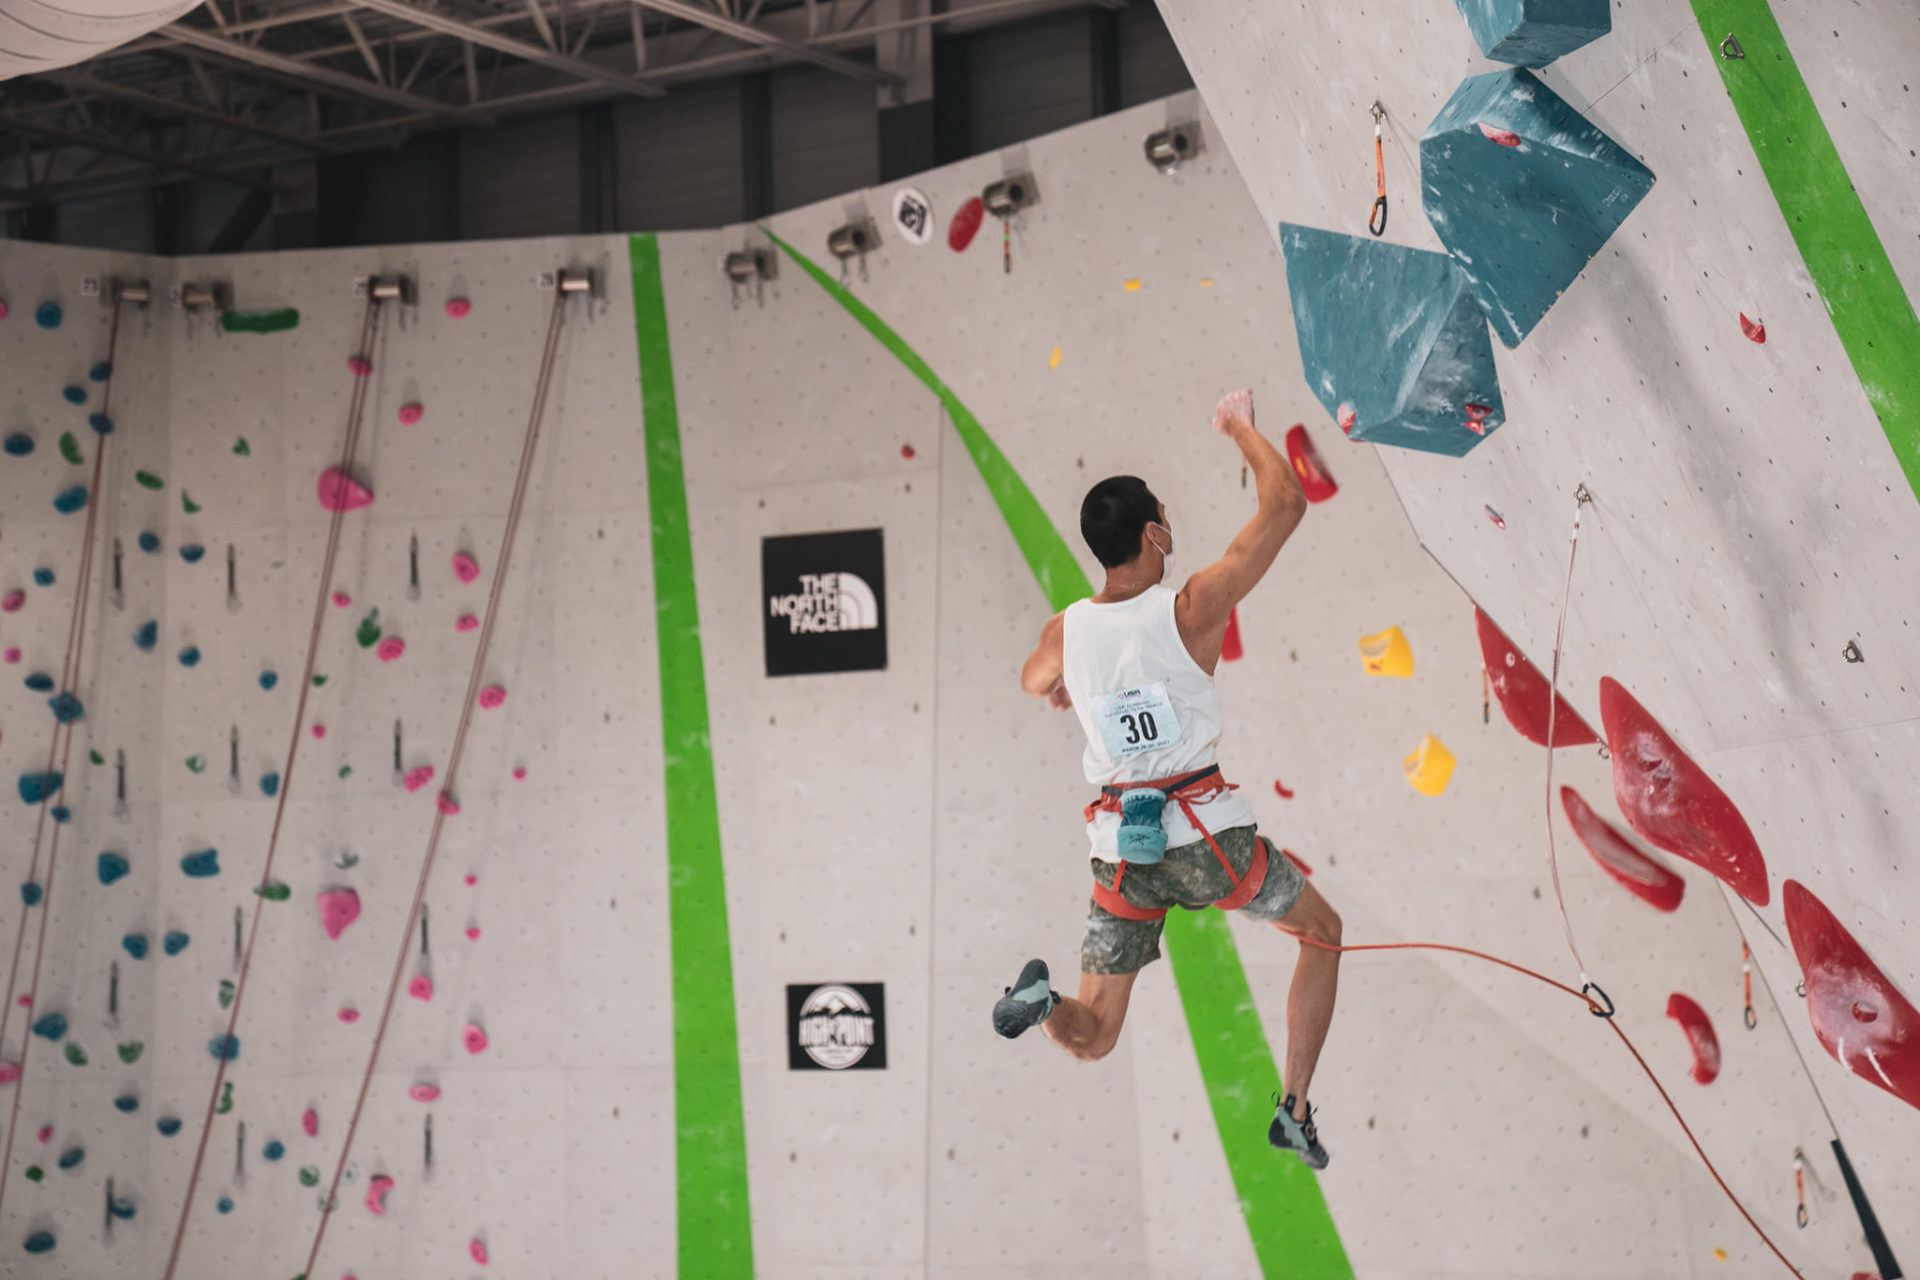 #30 Male climbing competitor mid jump on climbing wall